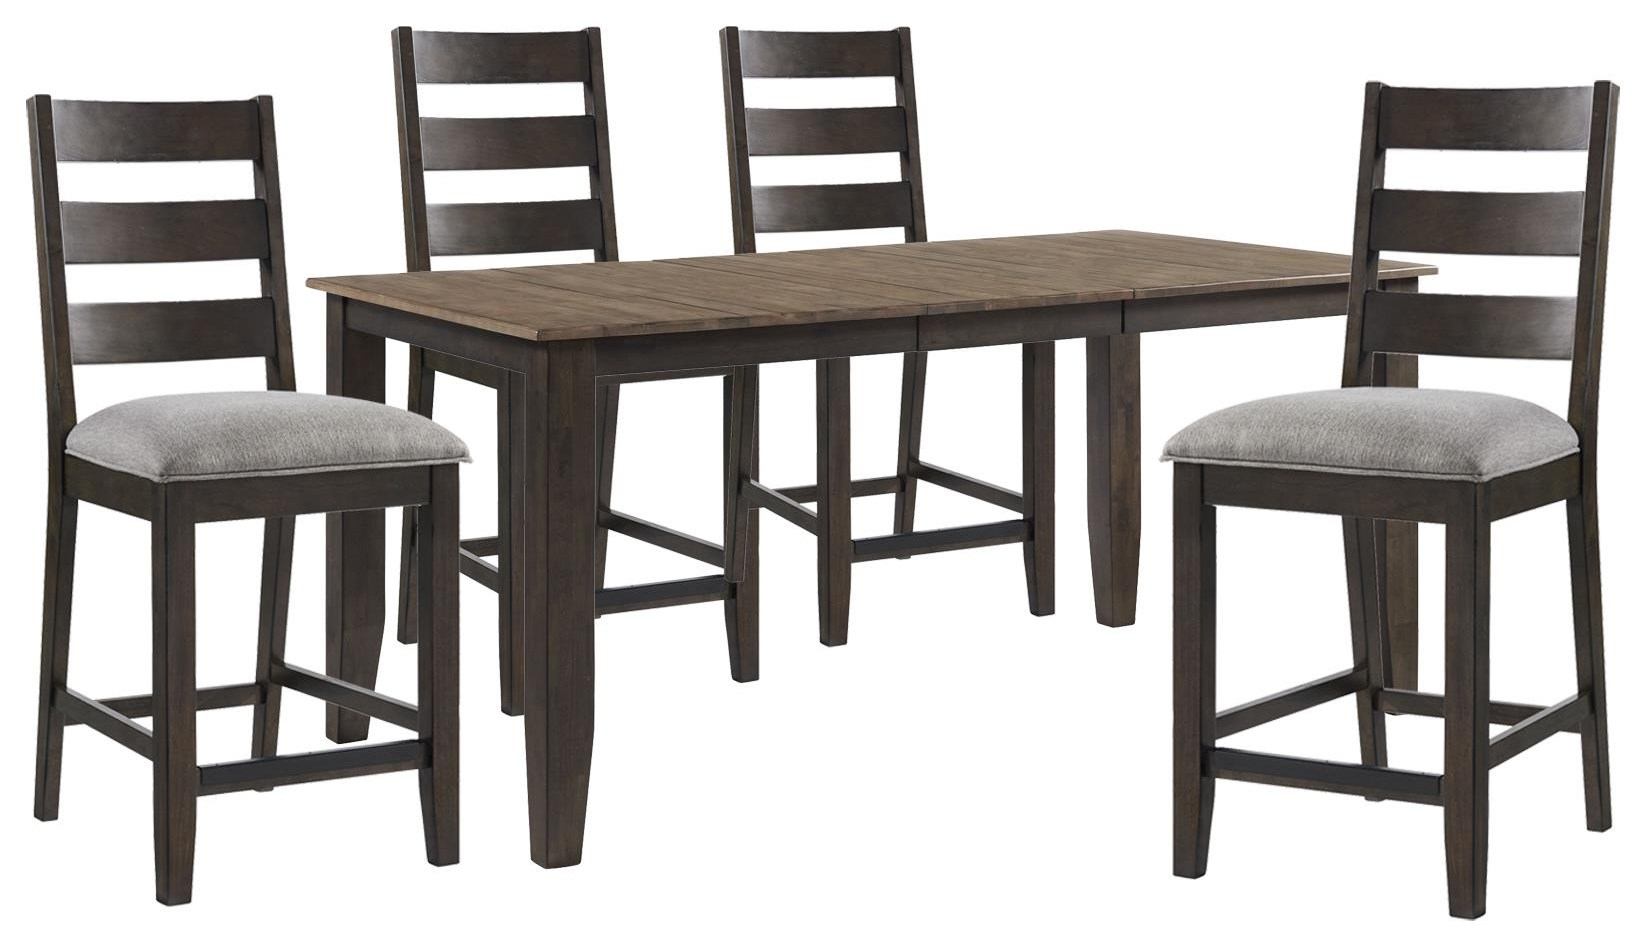 Beacon Counter Height Table and 4 Upholstered Chair by Sussex Bay at Johnny Janosik